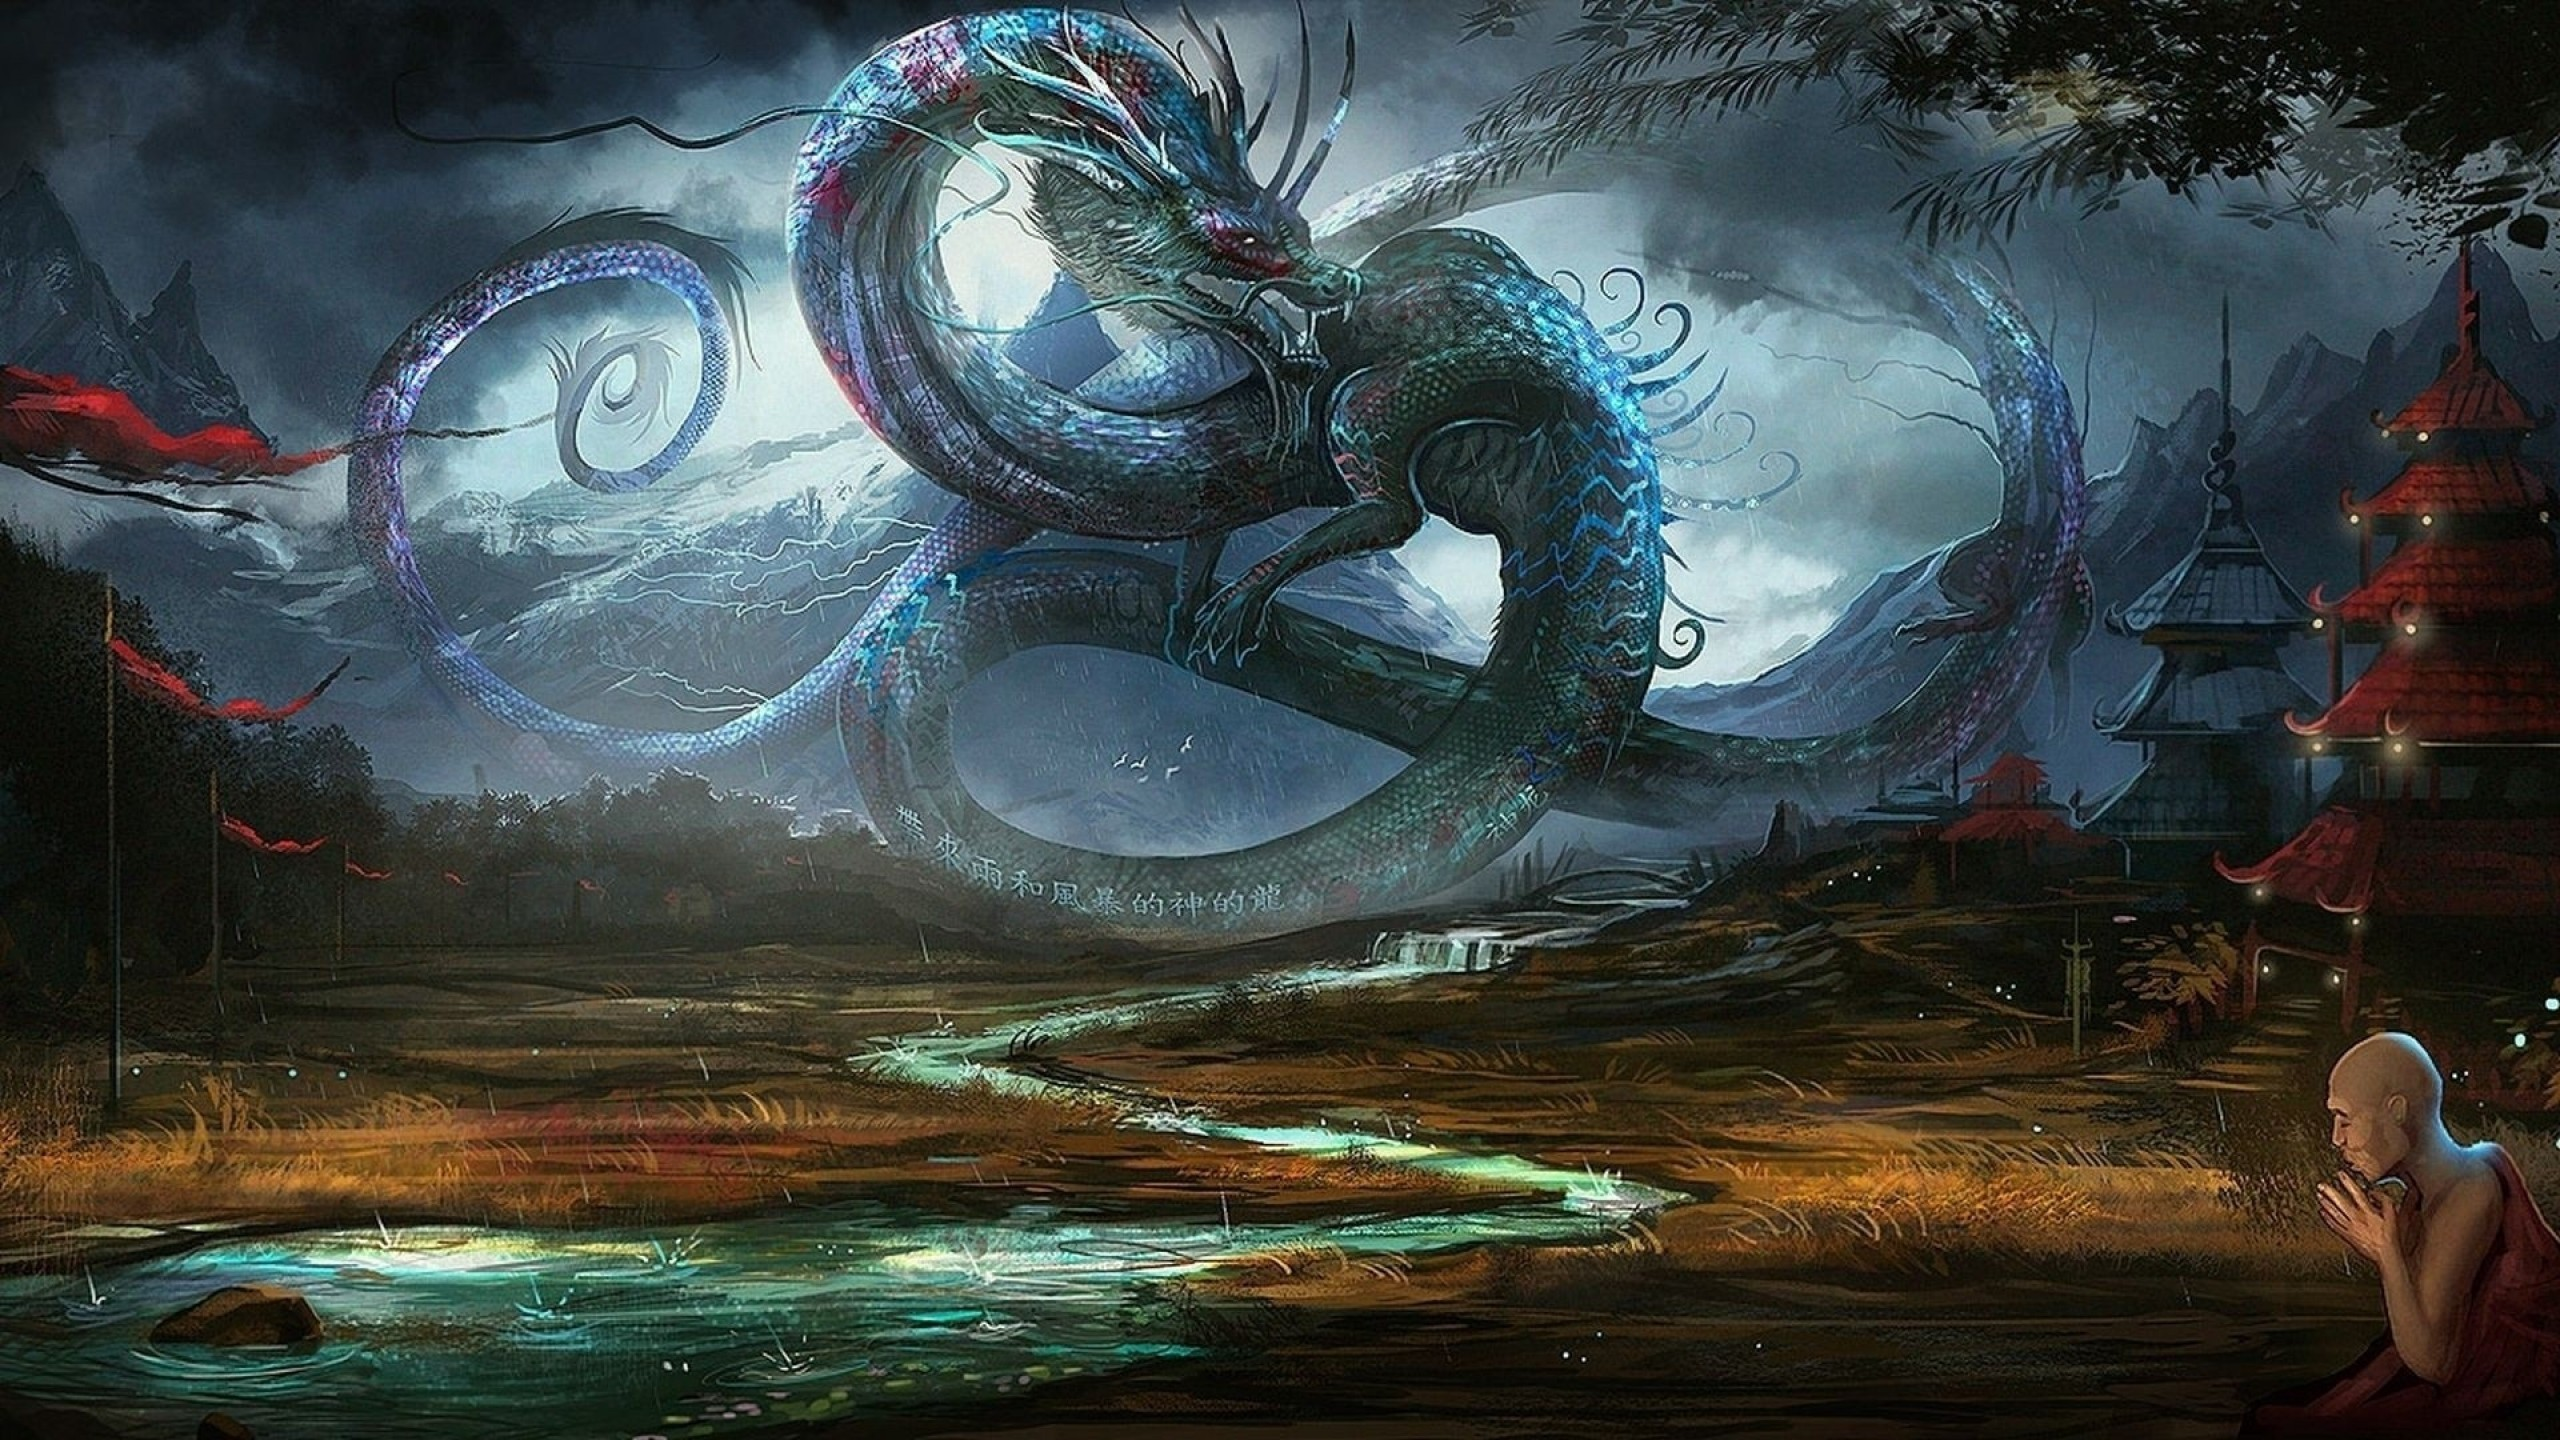 free wallpapers for desktop   Background 3d Wallpaper #188   HD Wallpaper &  Desktop Backgrounds   wallpaper   Pinterest   Blue dragon, Dragons and  Wallpaper